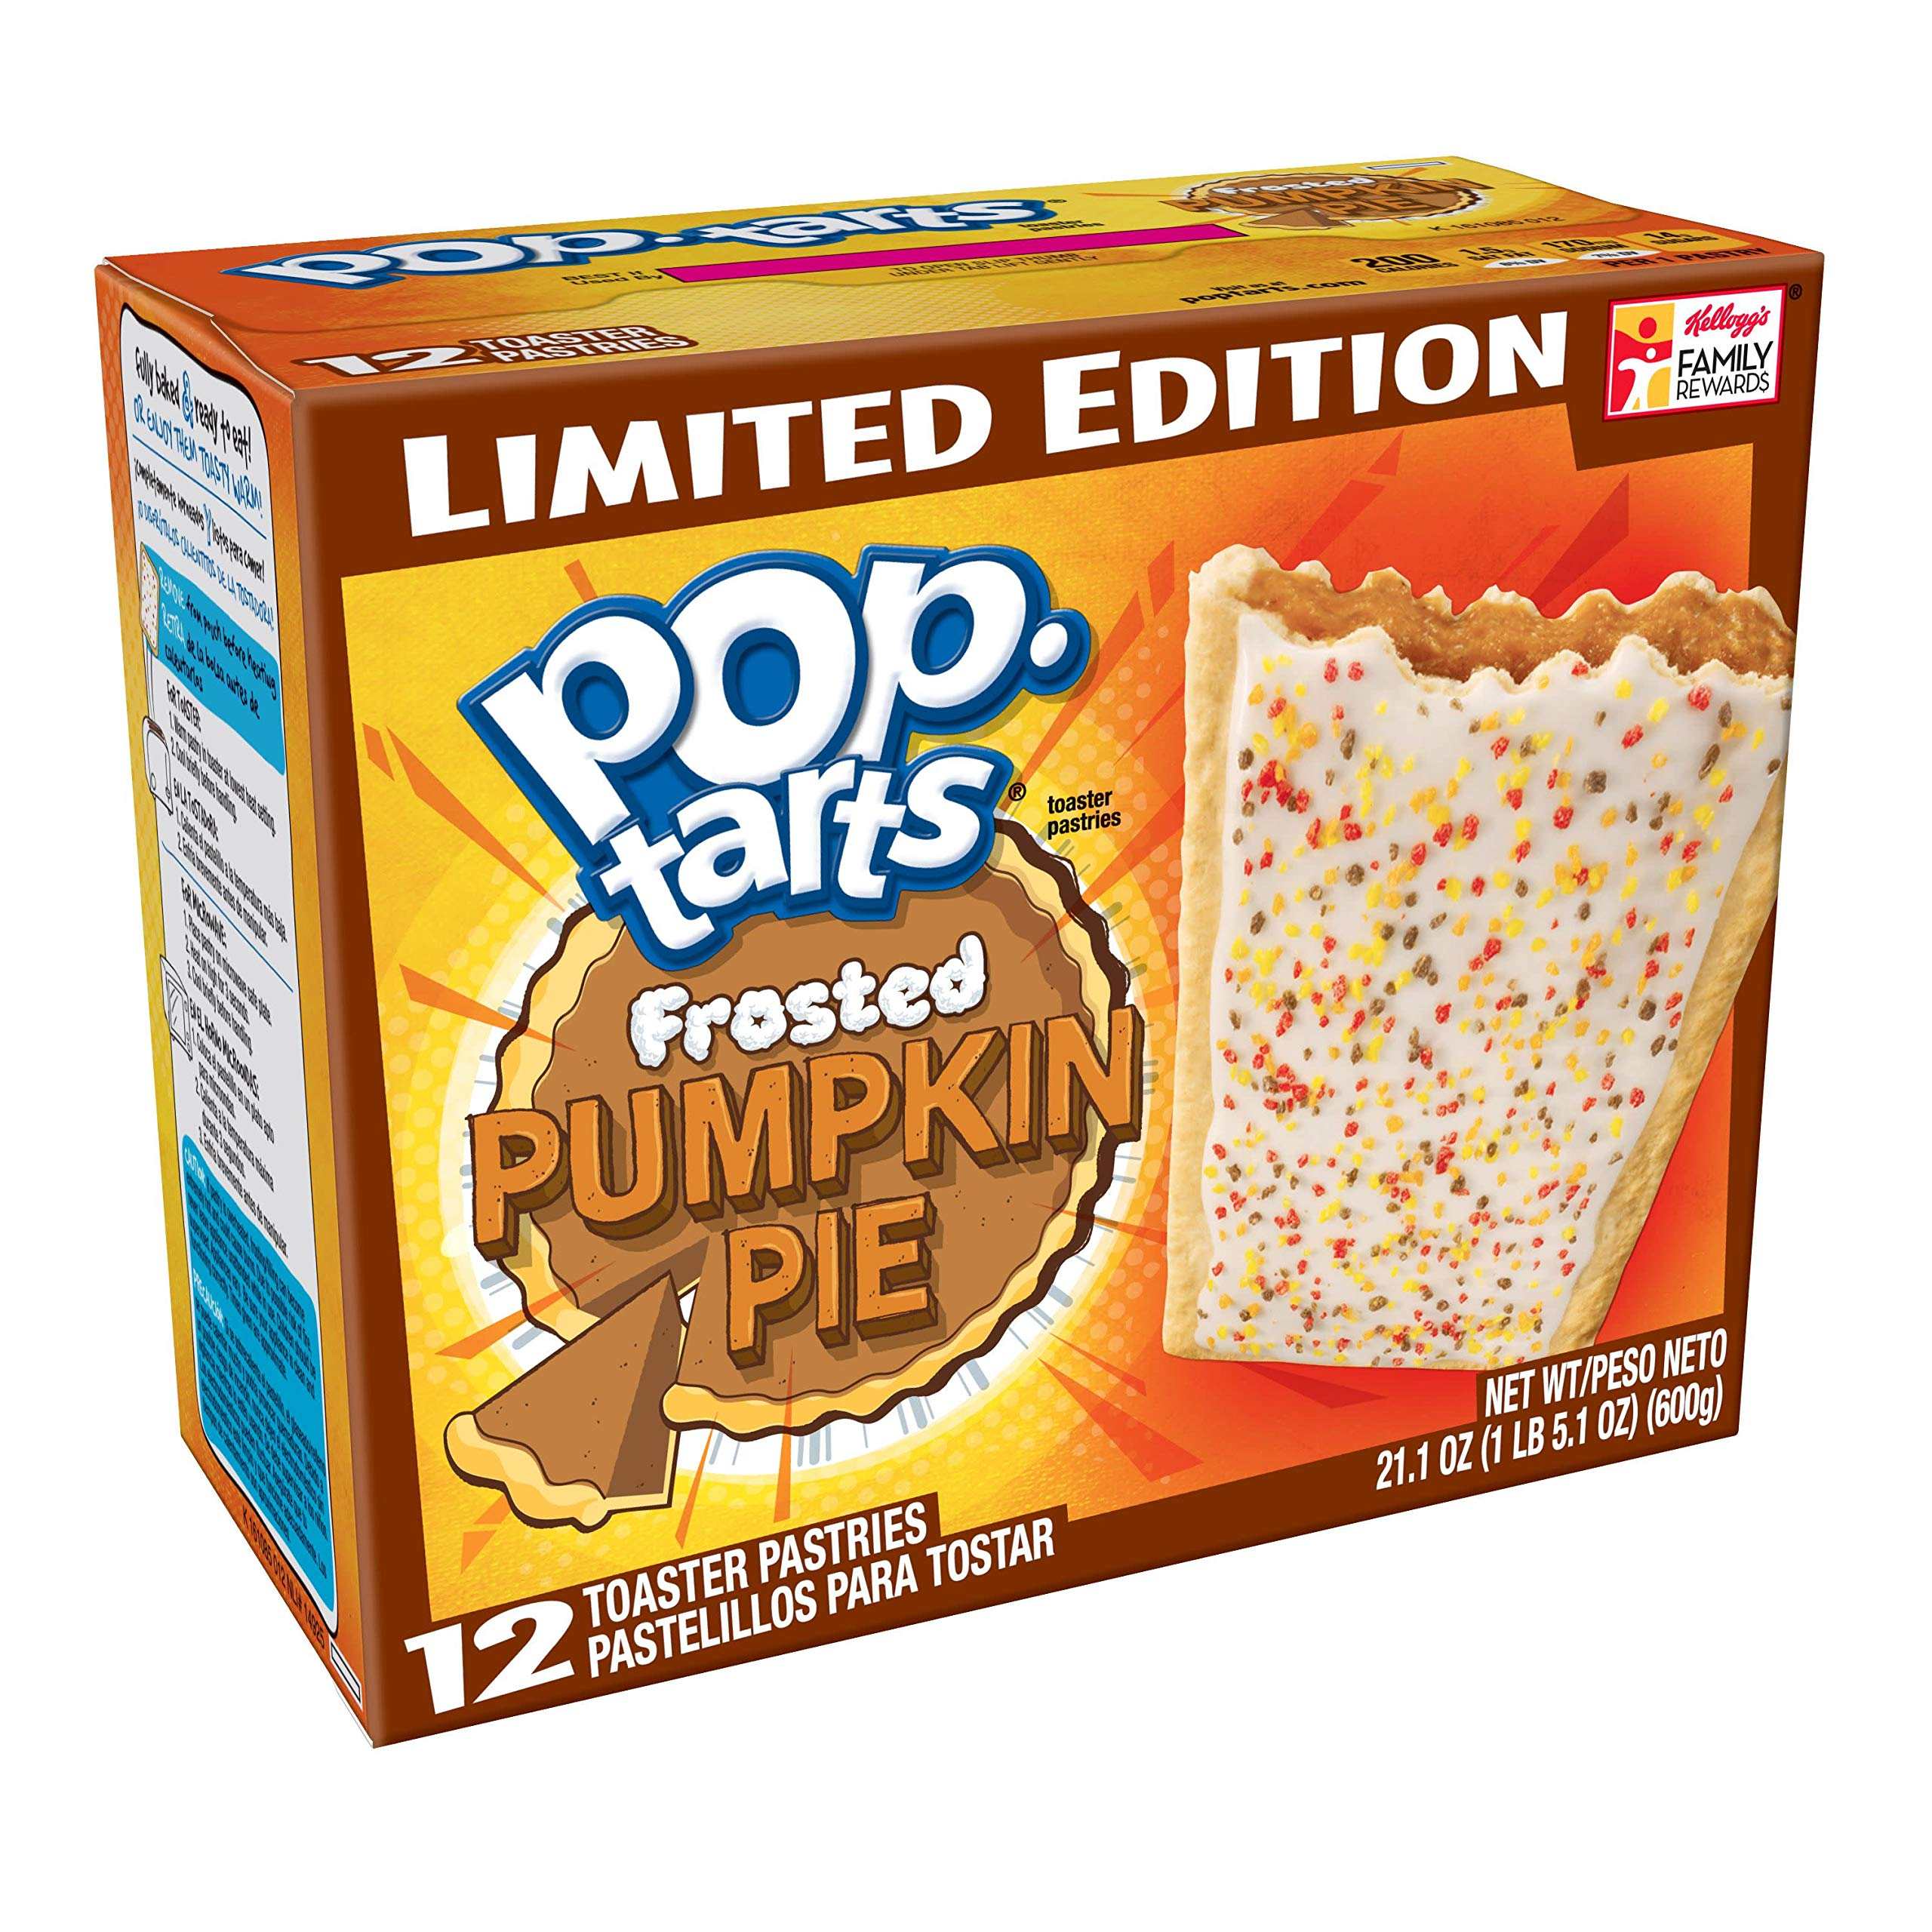 Pop-Tarts Breakfast Toaster Pastries, Frosted Pumpkin Pie Flavored, Limited Edition, 21.1 oz, 12 Count,(Pack of 12)